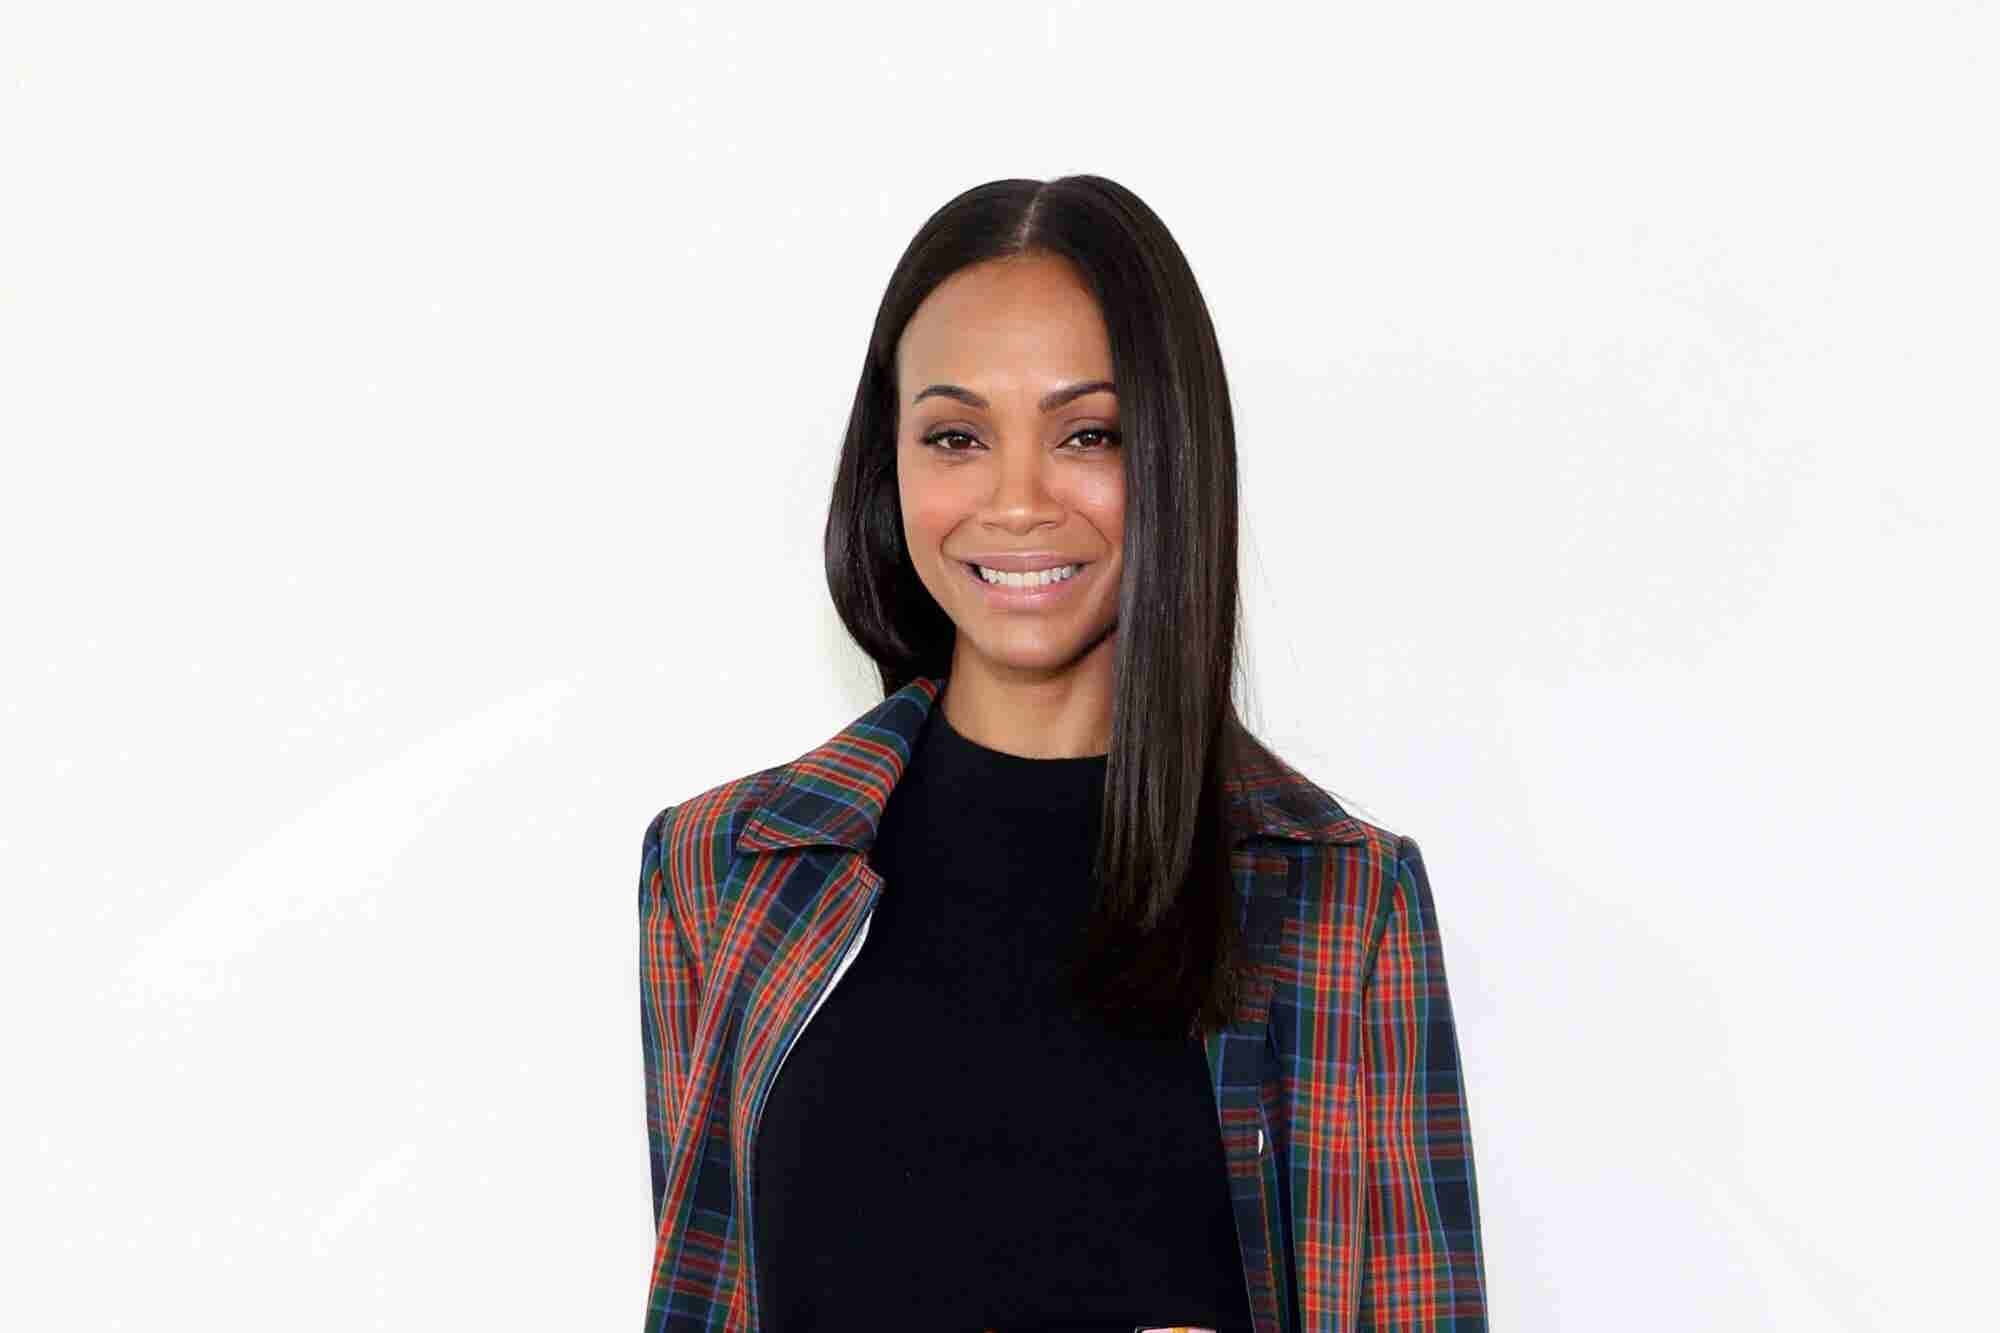 'Avengers' Star Zoe Saldana Not Only Battles Bad Guys Onscreen -- She's Also Fighting the Lack of Diversity in Media